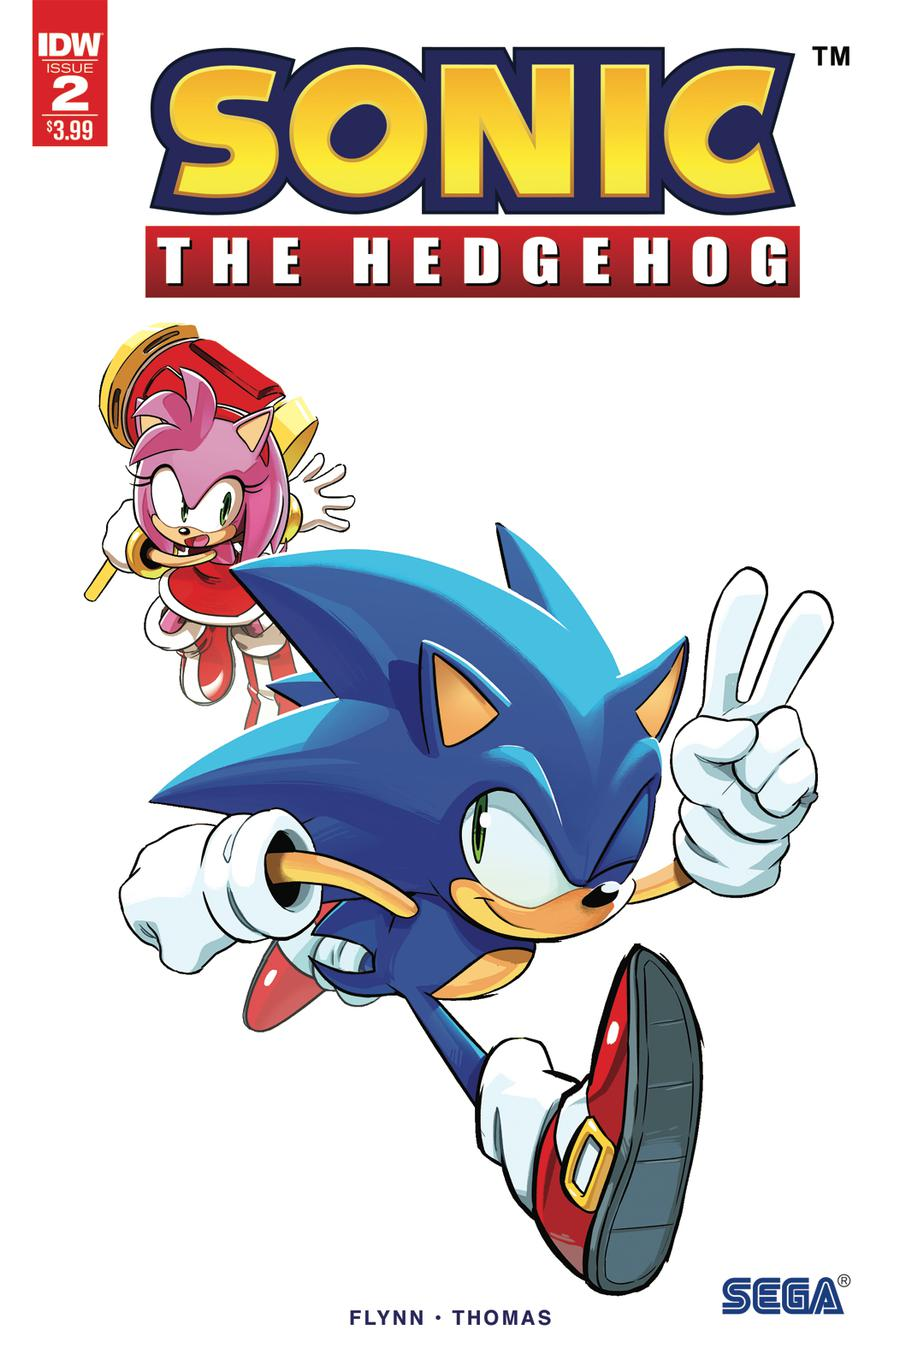 Sonic The Hedgehog Vol 3 #2 Cover E 2nd Ptg Variant Tyson Hesse Cover